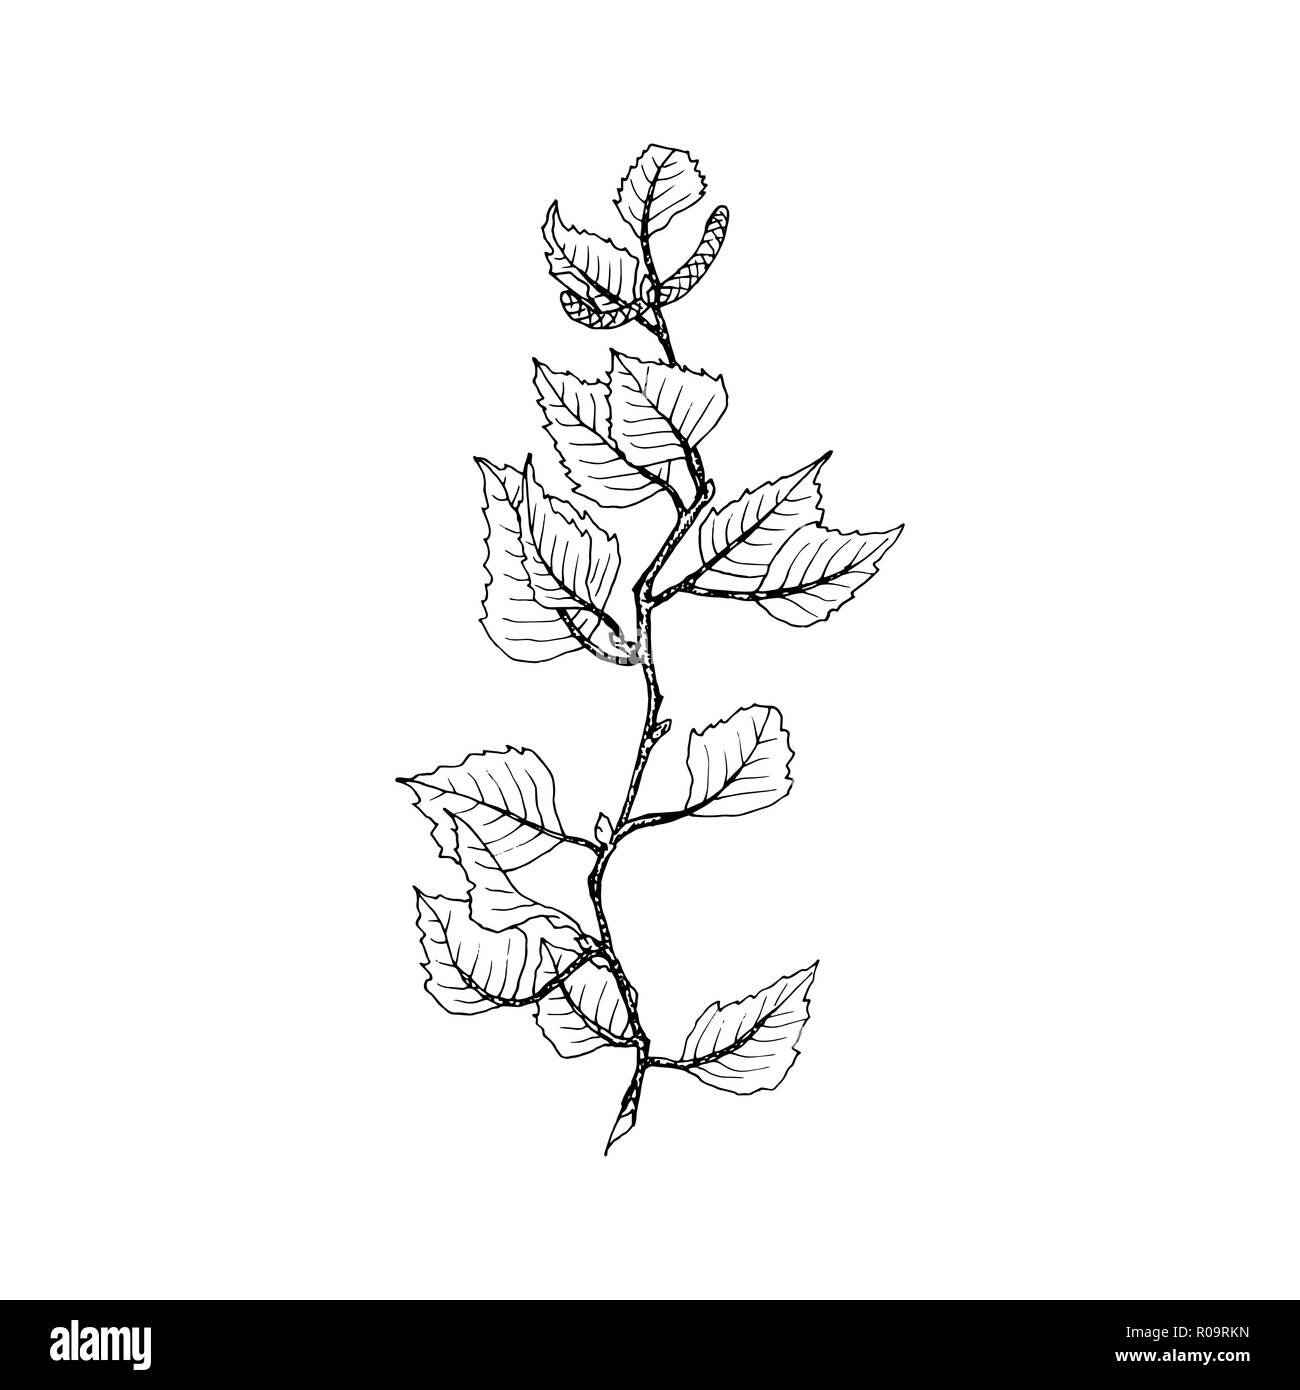 Birch tree branch contour line illustration. Tree twig with leaves and seeds on white background. Birch tree branch hand drawn autumn outline. Poster,banner,web design element. Isolated vector - Stock Image